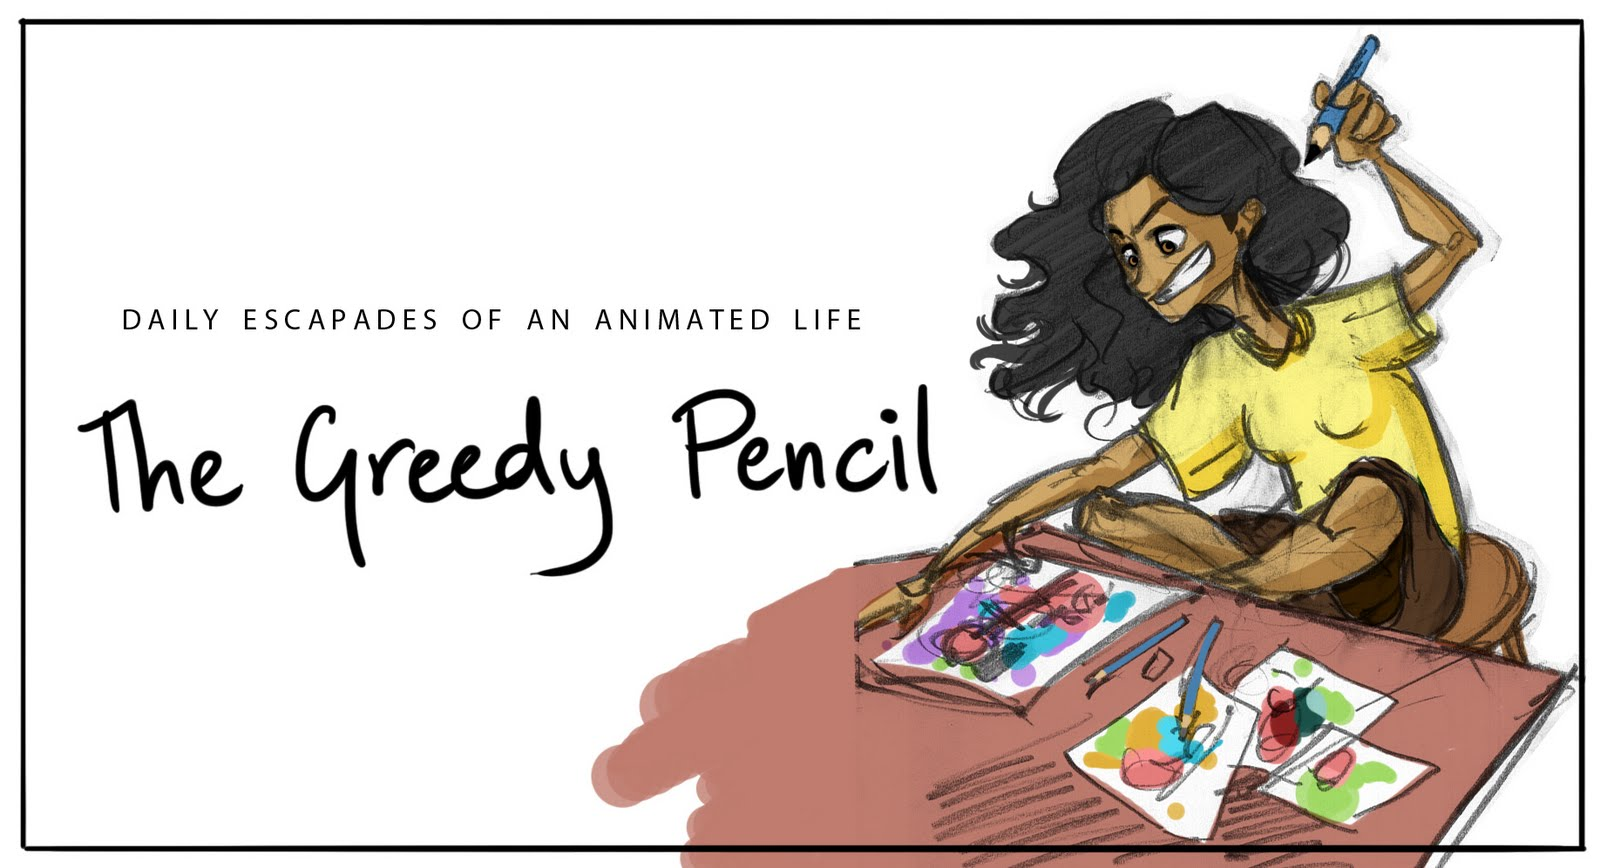 THE GREEDY PENCIL